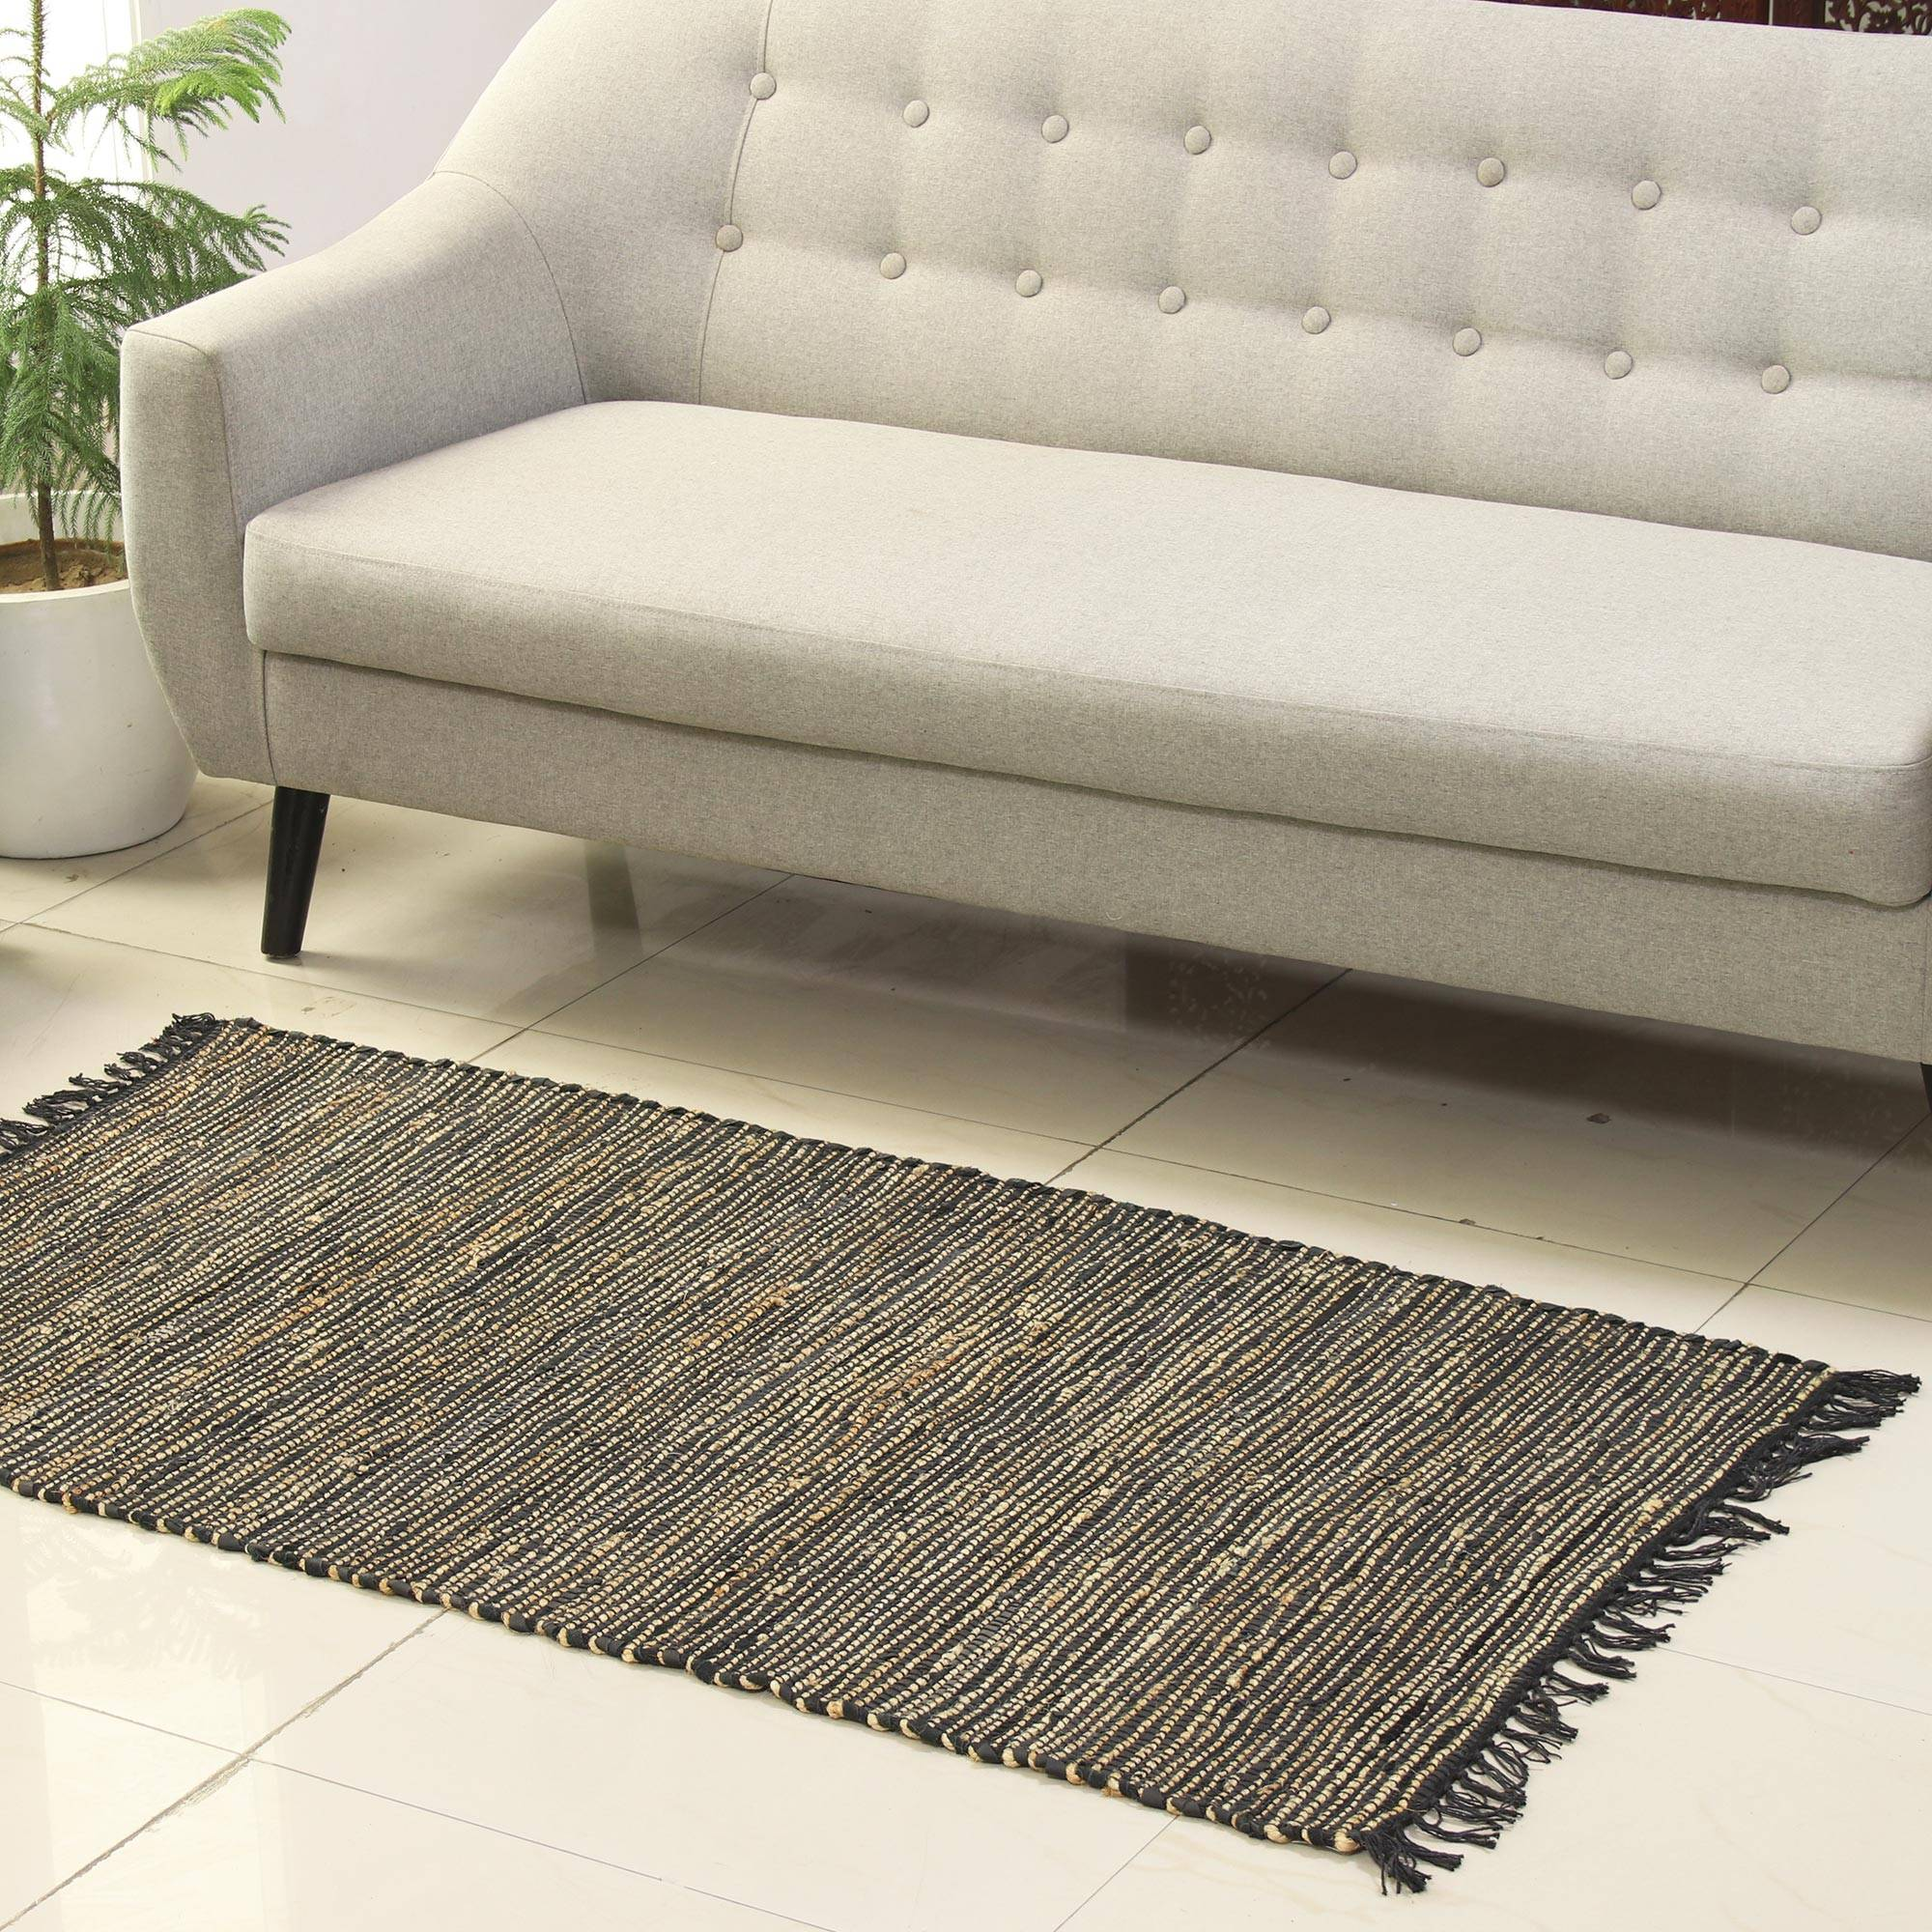 Onyx And Beige Jute And Leather Area Rug From India 2 5x5 Onyx Charm